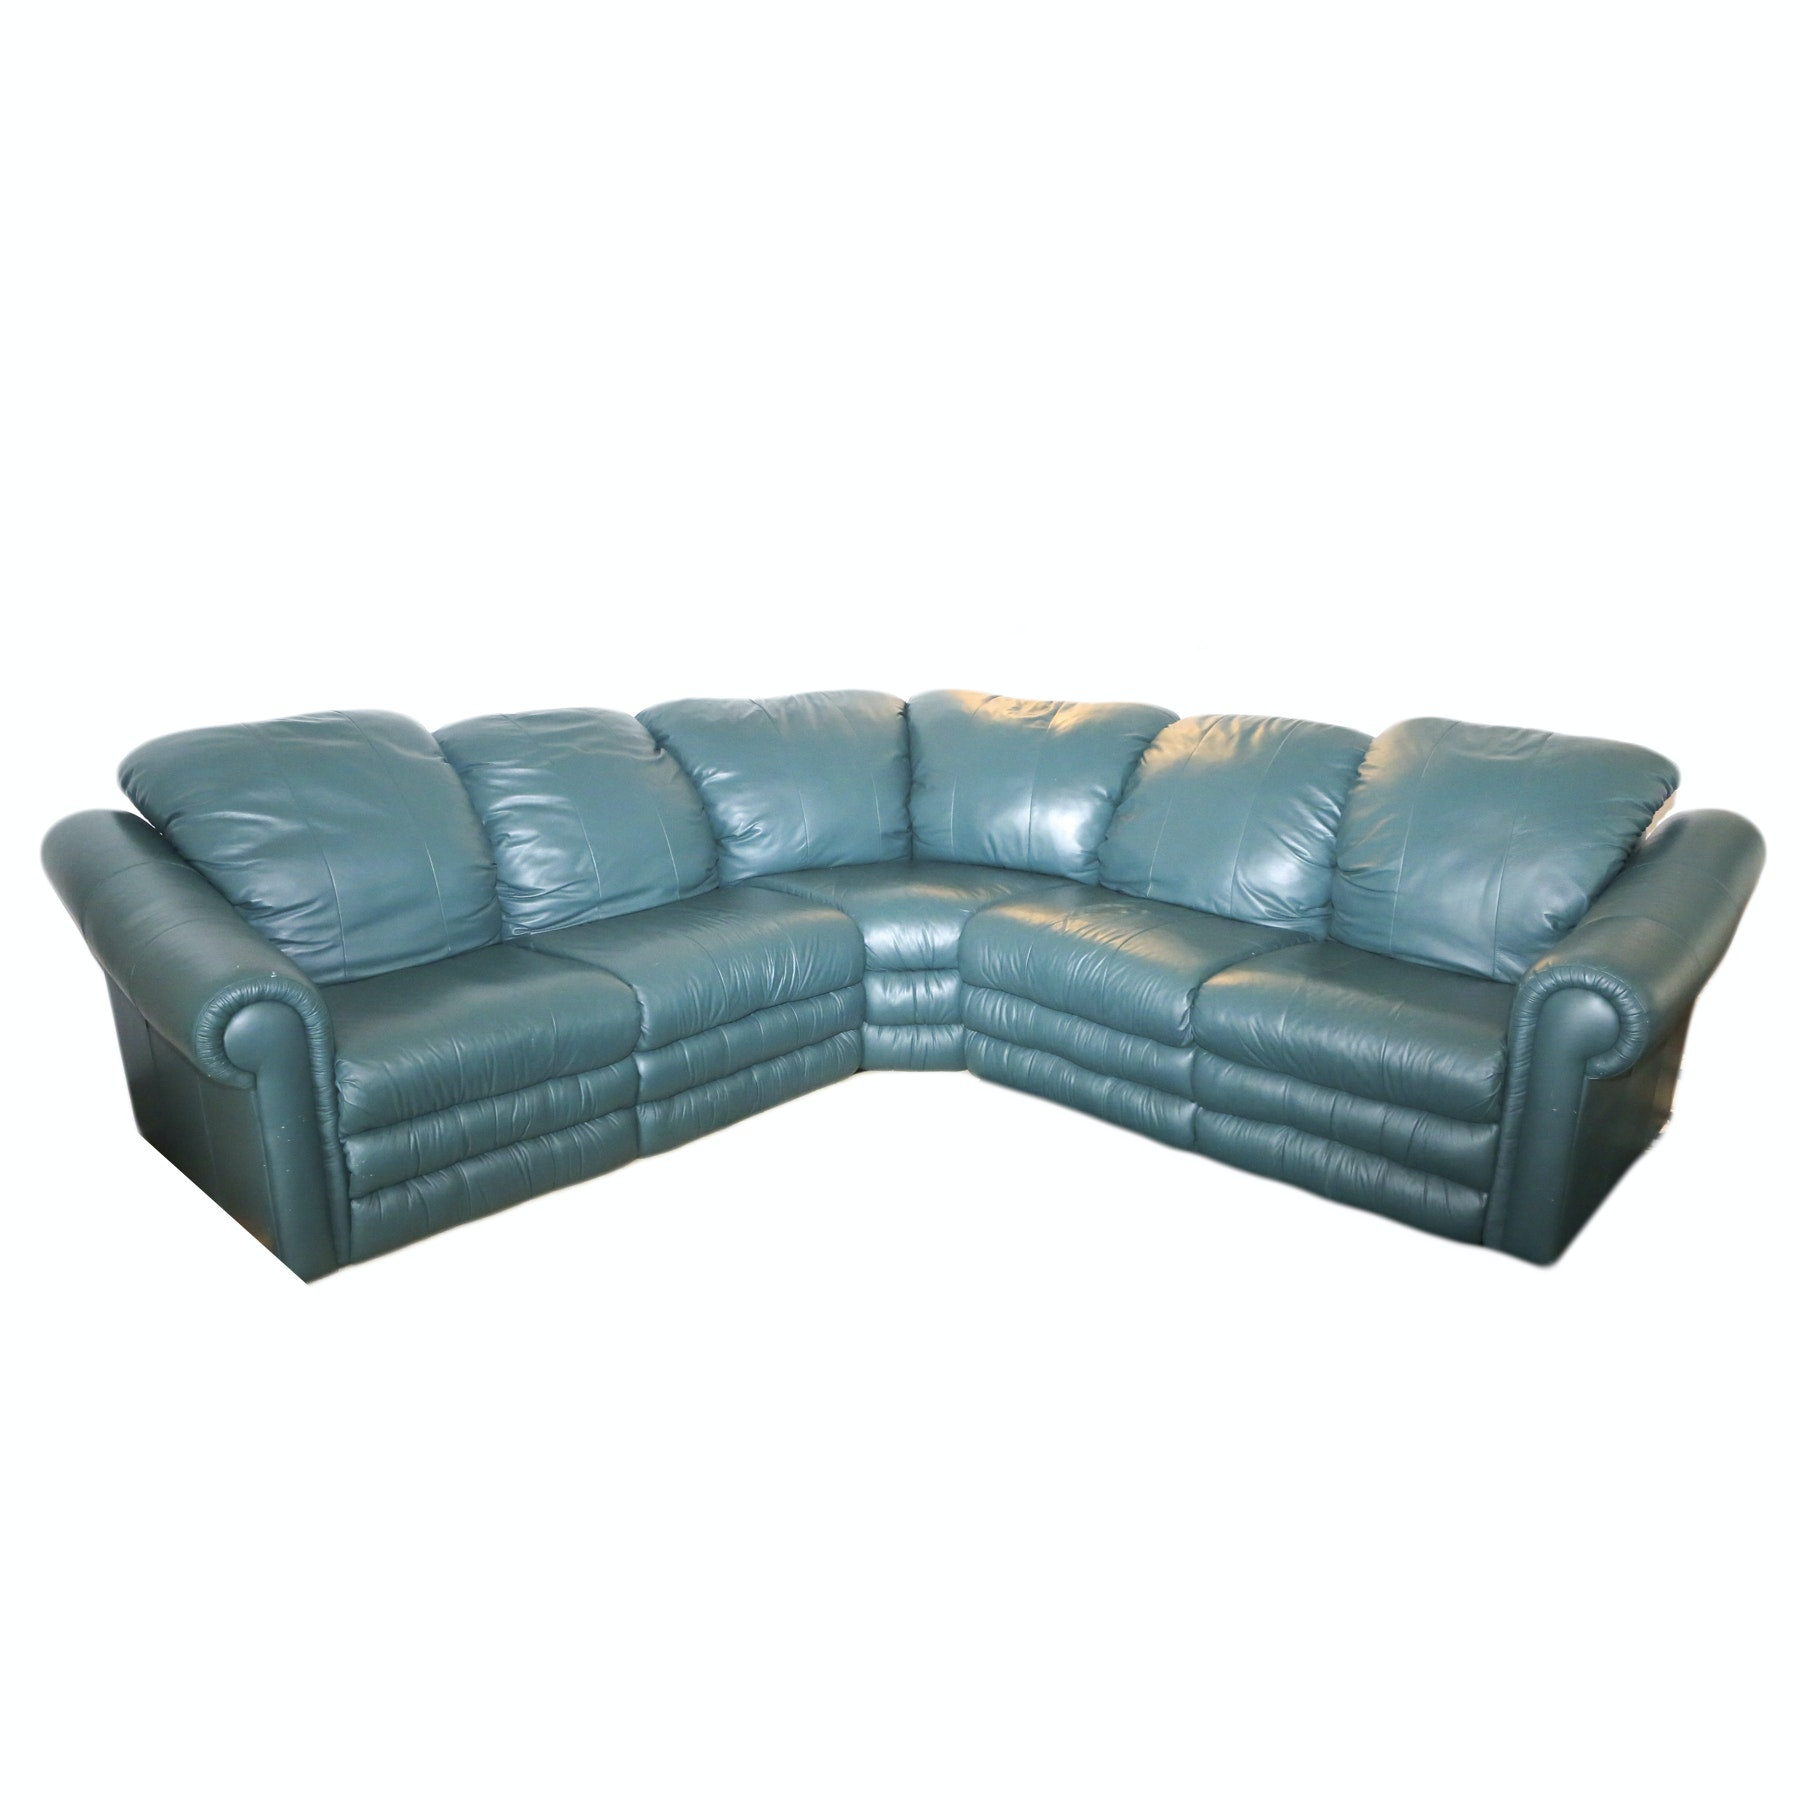 Hunter Green Bicast Leather Sectional Sofa